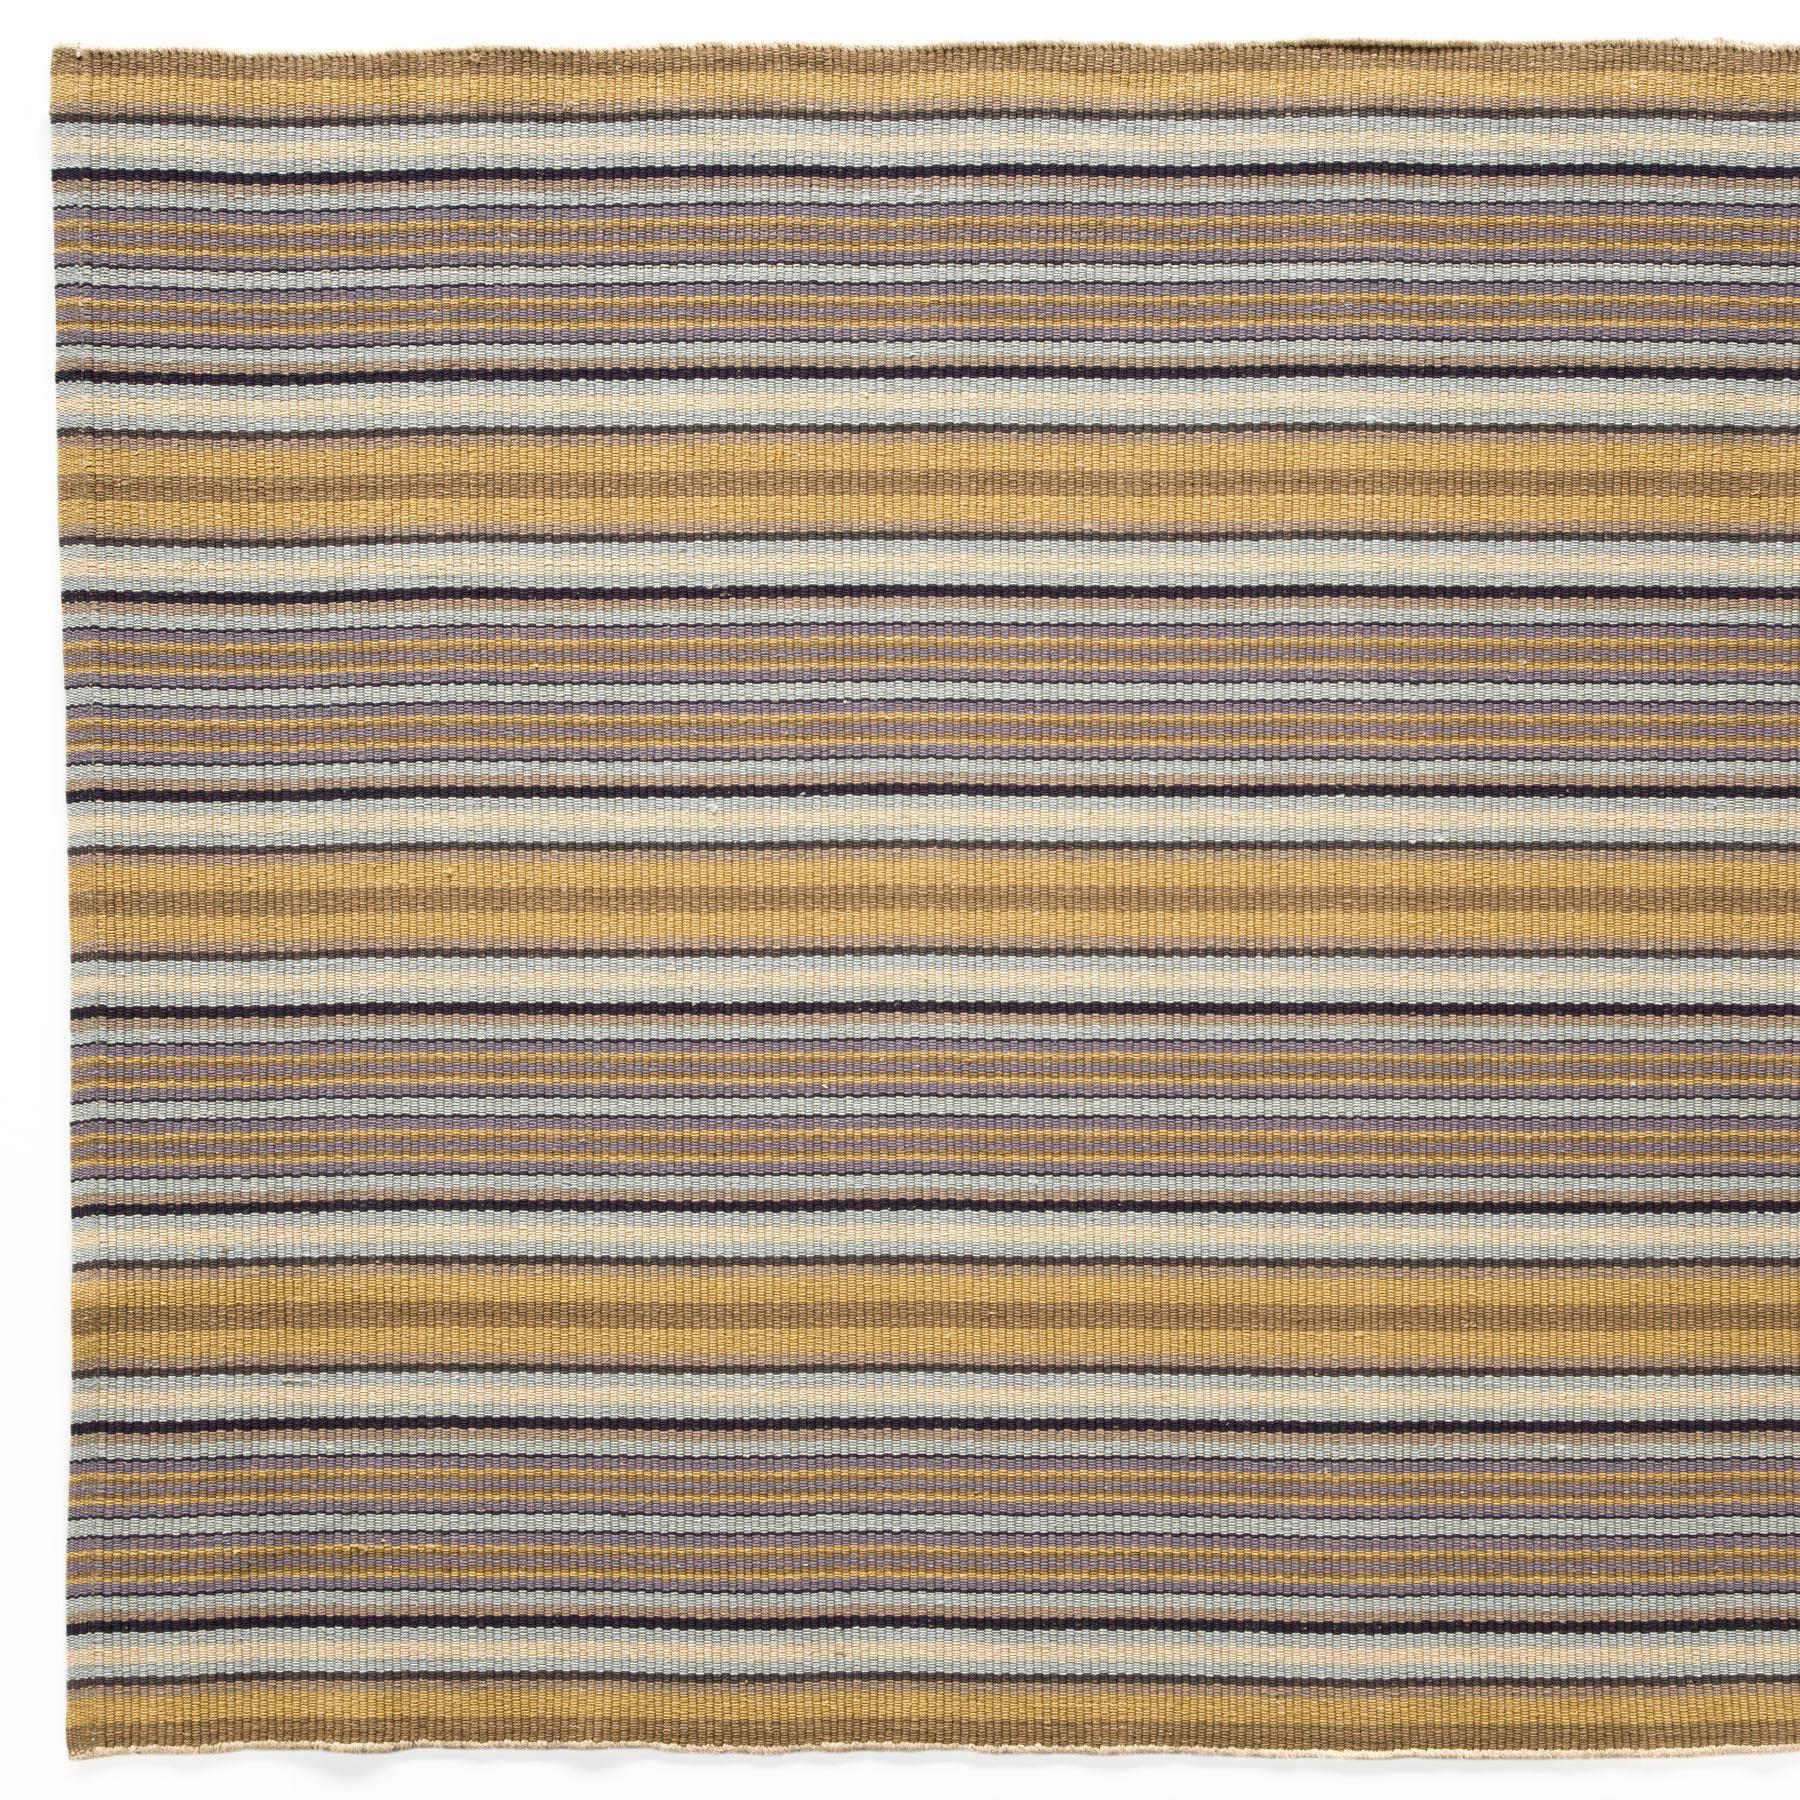 TREEHOUSE STRIPE LOOMED RUG, LARGE: View 1